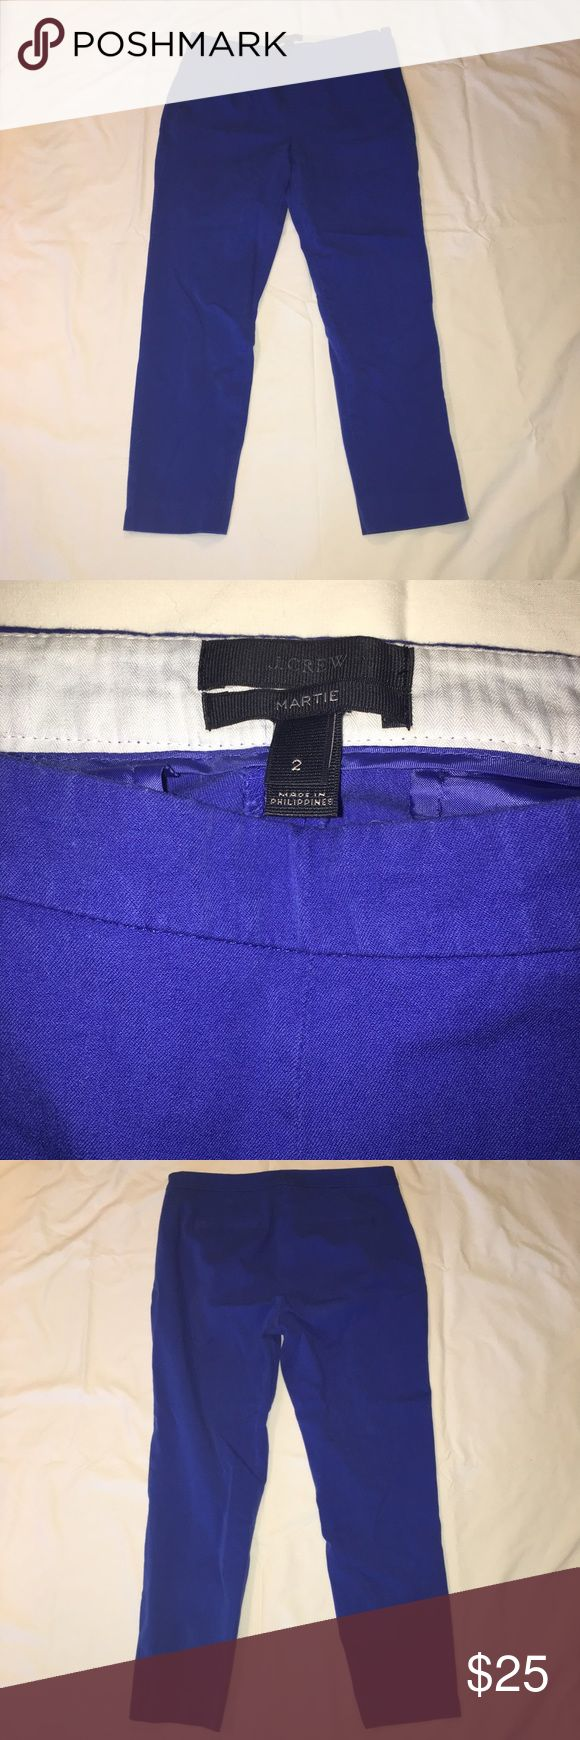 J. Crew Martie Pants Adorable royal blue J. Crew Martie pants - perfect for all of you girl bosses out there! Rock these in the office this spring and you'll be sure to make a great impression. Gently used and comes from a smoke-free home! J. Crew Pants Ankle & Cropped